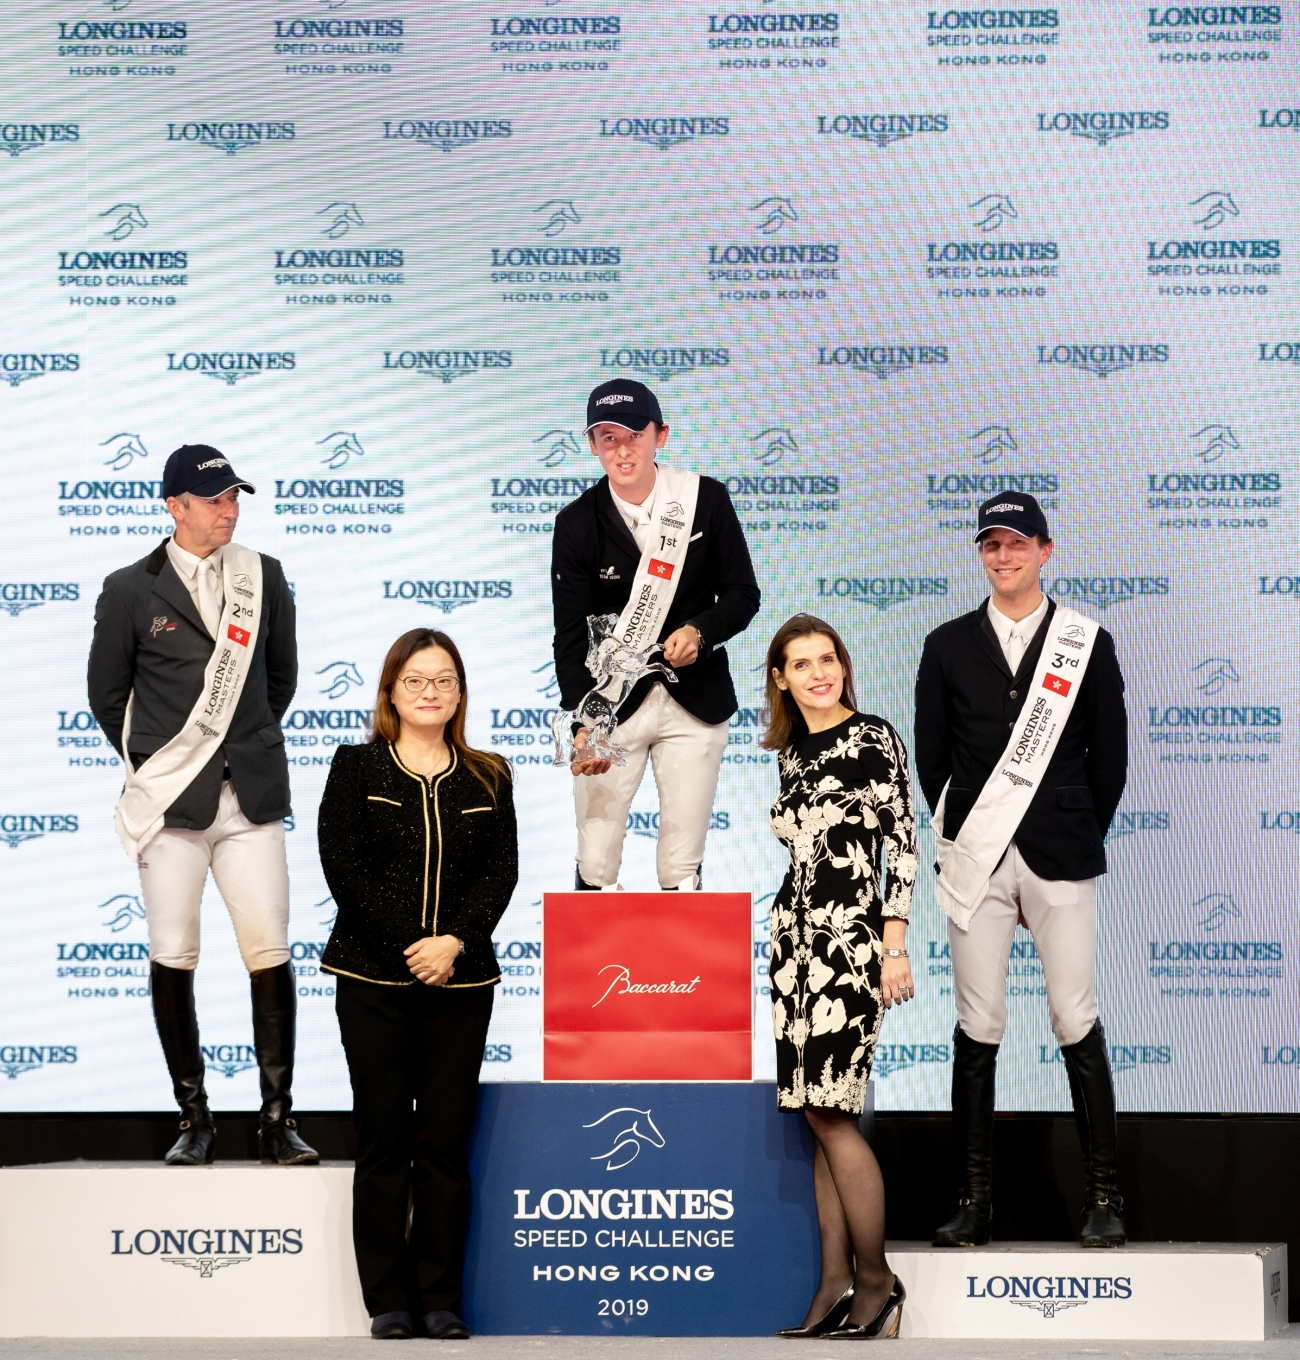 2019.02.17.99.99 Longines Masters HKG CSI 5 Podium Bertram Allen & Christy Jnr EEM JR